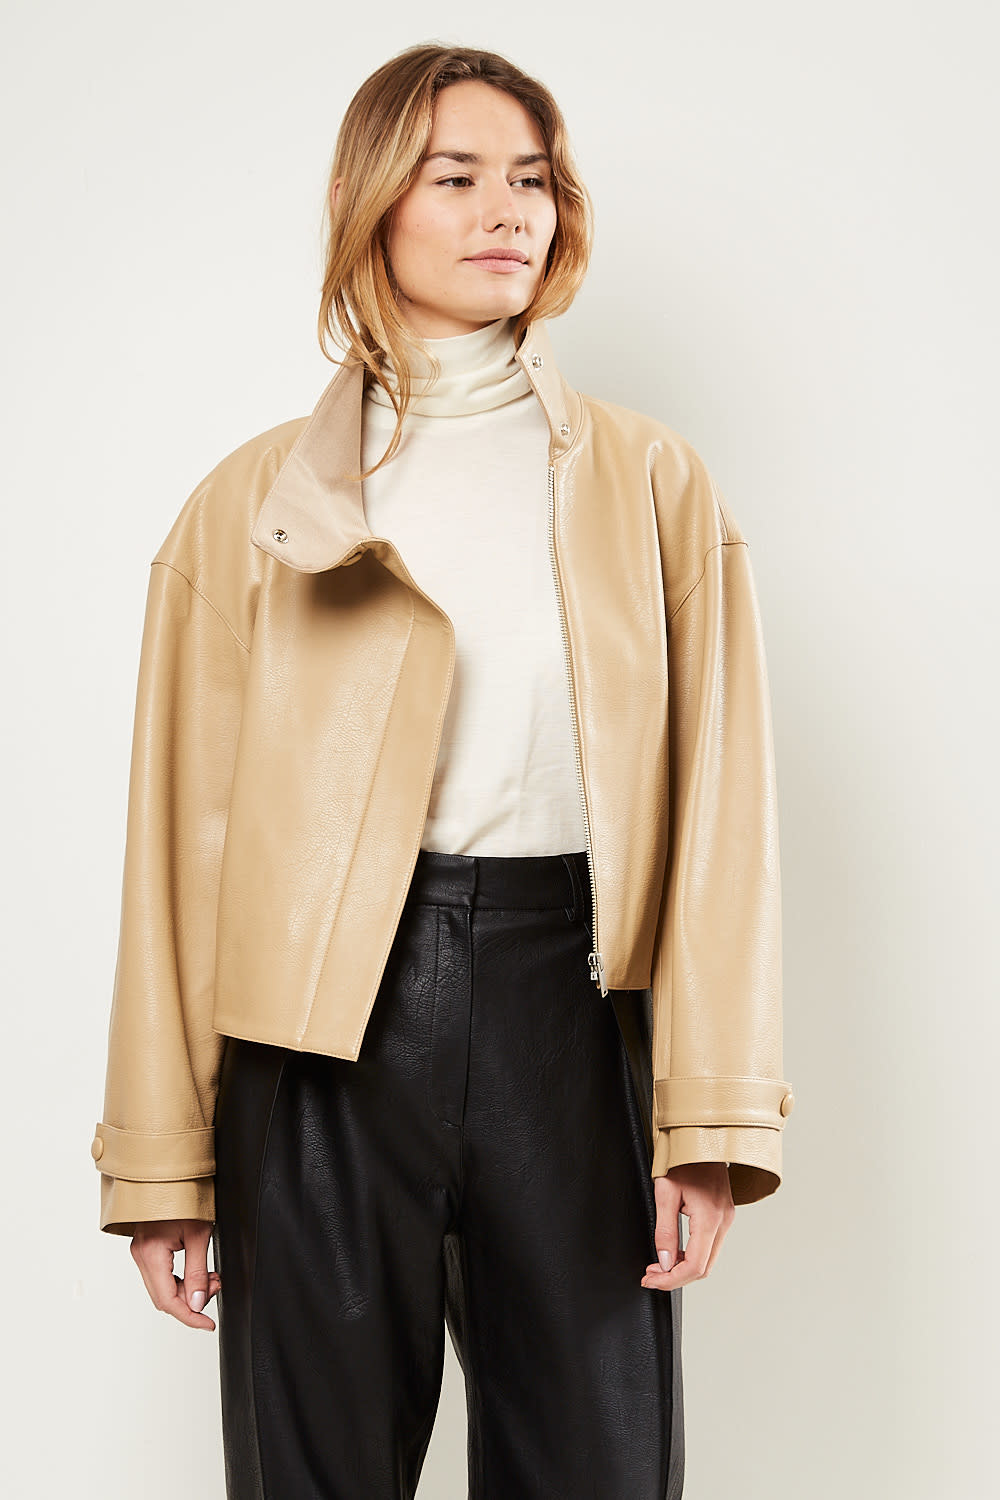 Drae Ian faux leather jacket